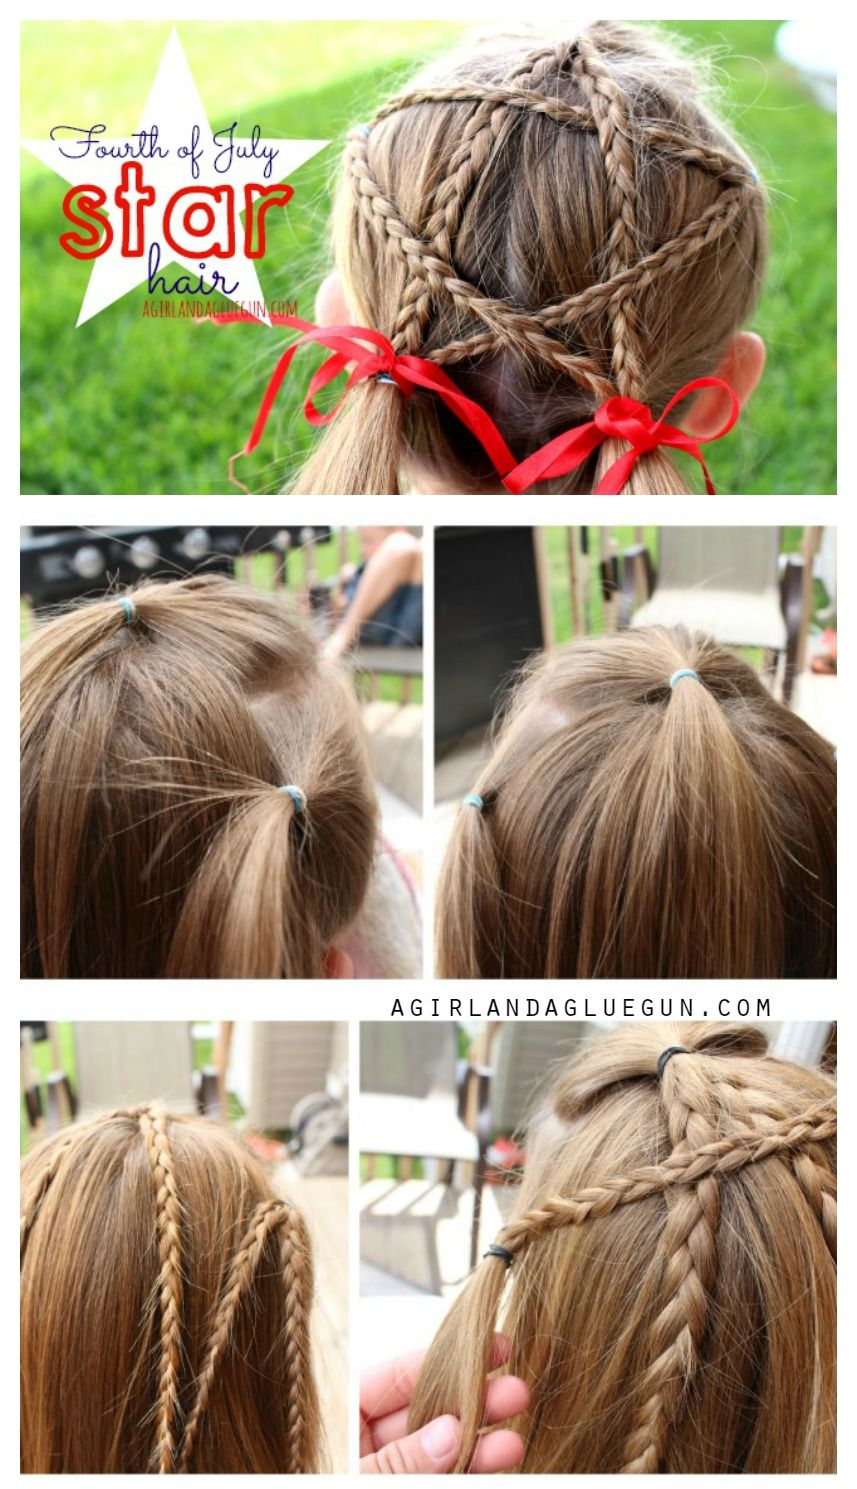 To acquire Puppies Lovely hair styles with braids pictures trends